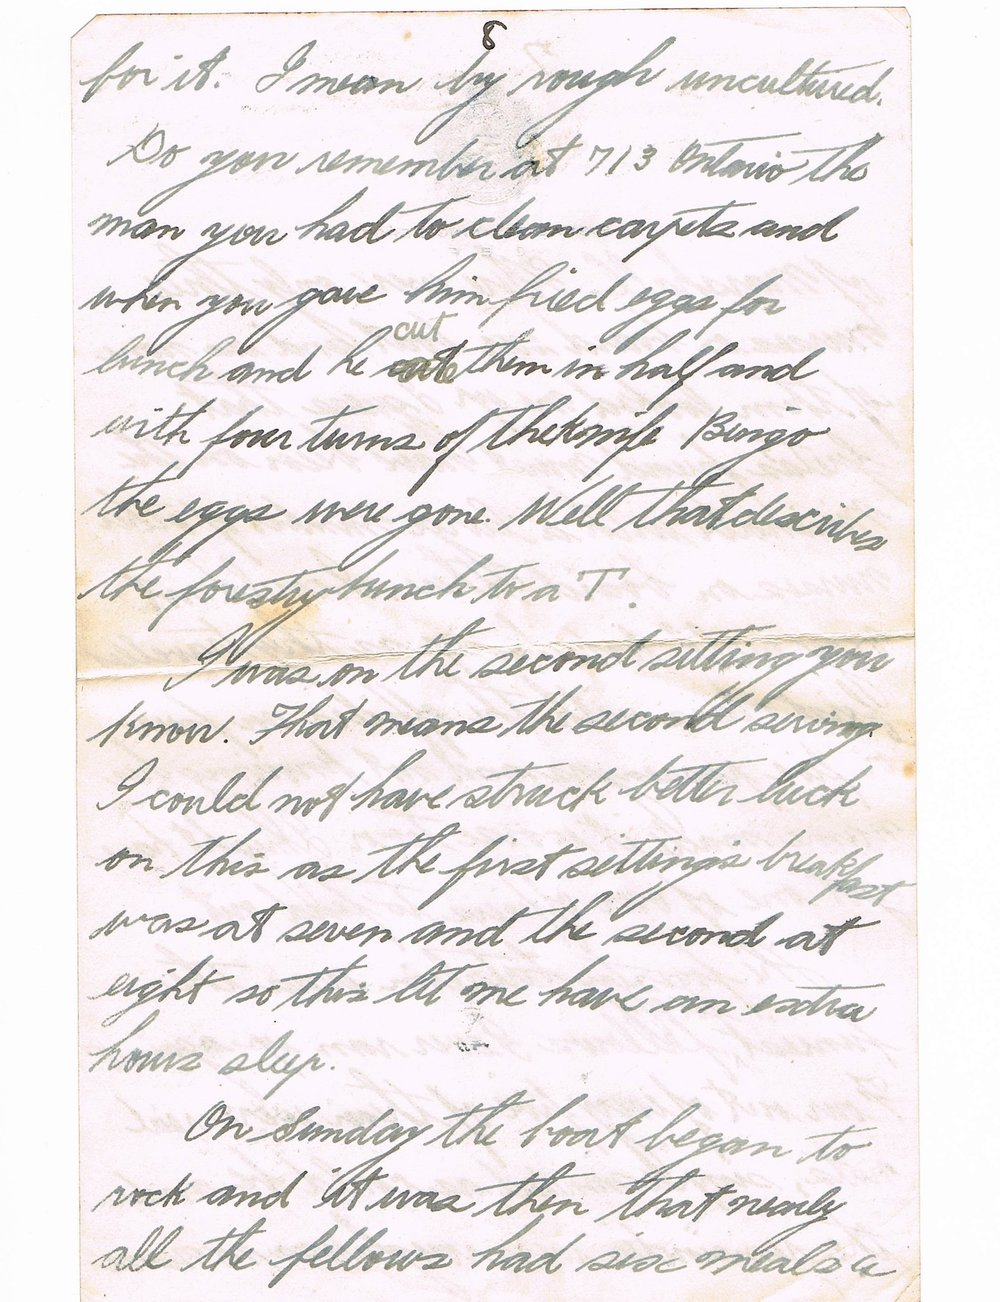 Eighth page of handwritten letter